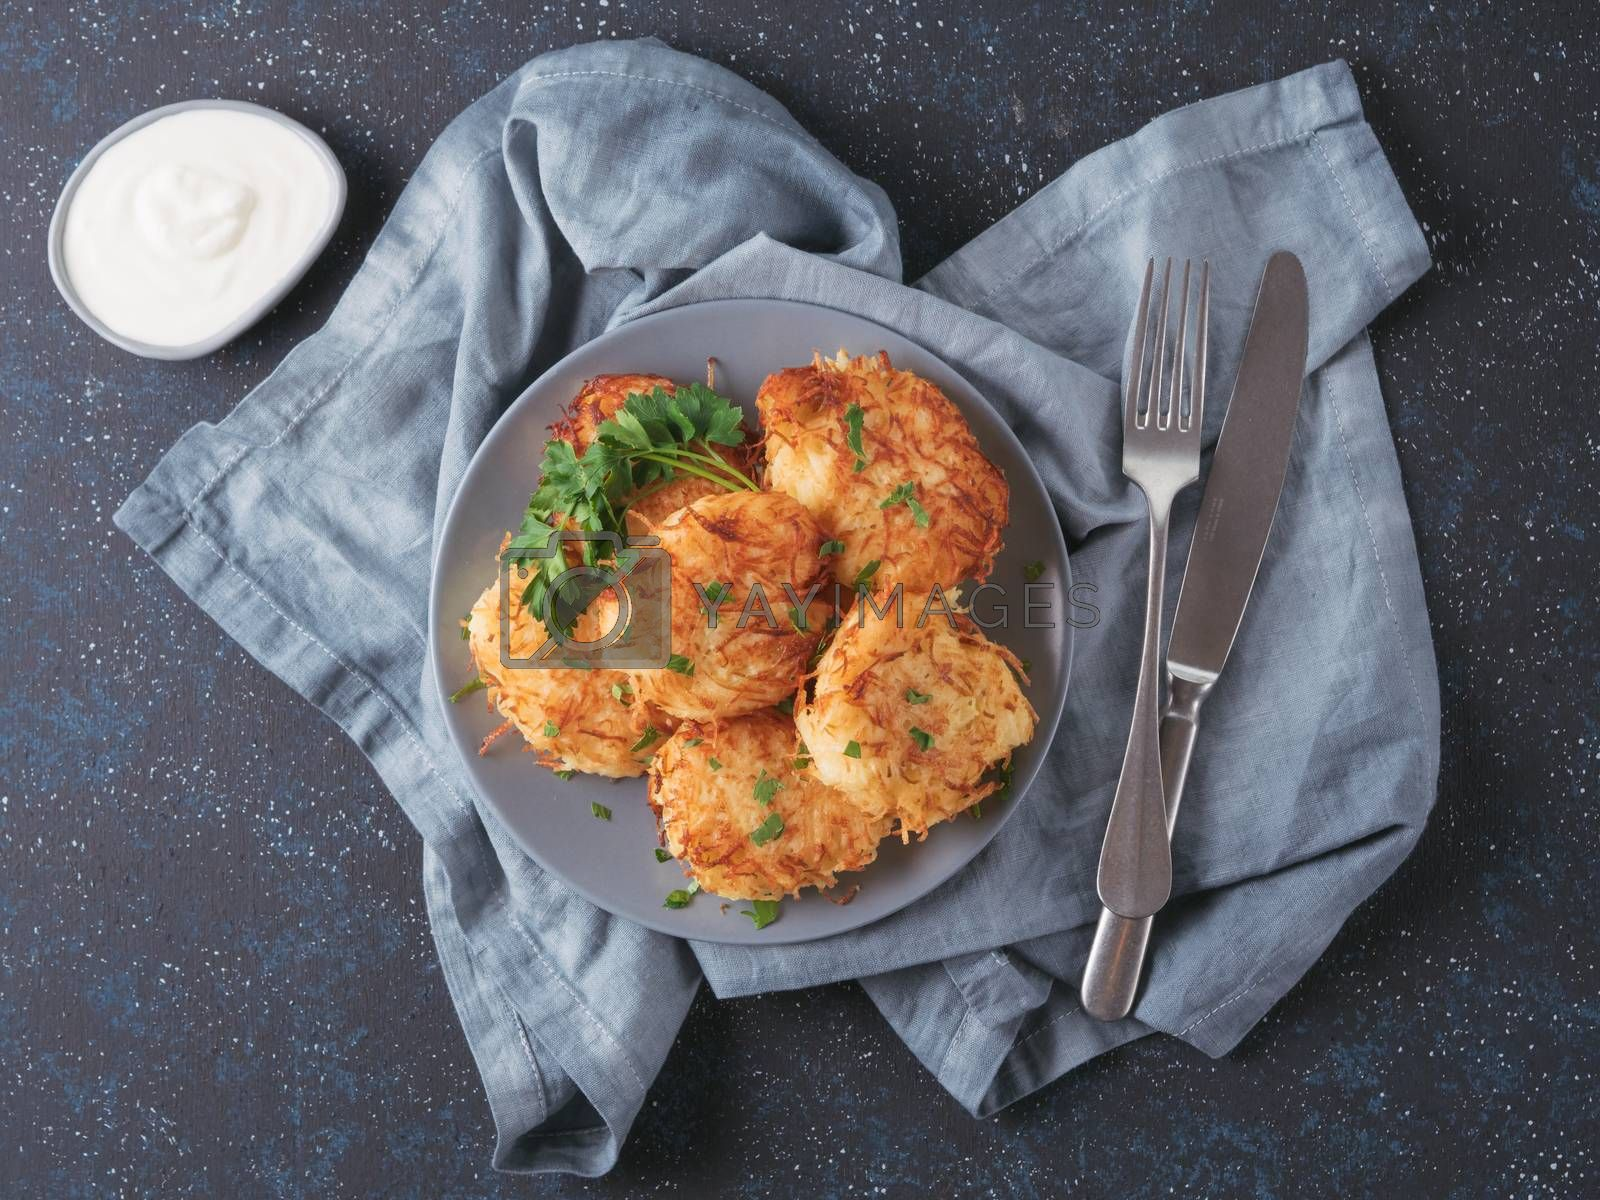 Close up view of potato pancakes. Potato flapjack on gray plate over dark blue background, with fresh parsley and sour cream. Copy space for text. Top view or flat-lay.